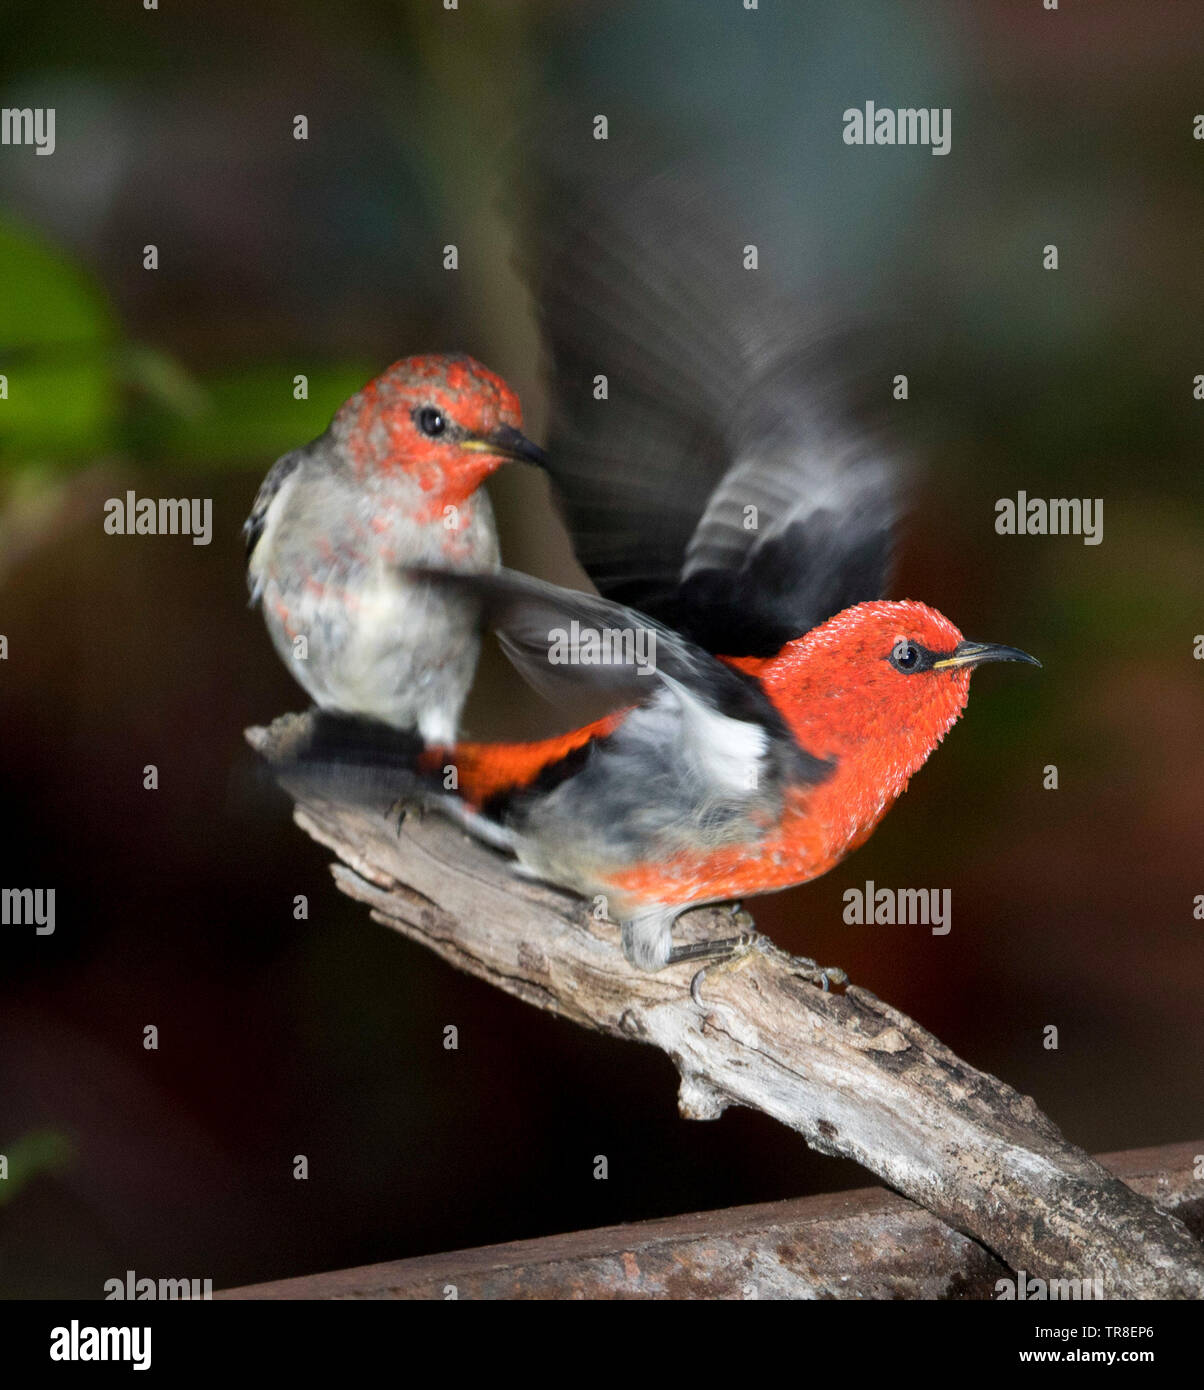 Pair of spectacular red and black male Australian Scarlet Honeyeaters, Myzomela sanguinolenta, one with wings extended, at garden bird bath - Stock Image